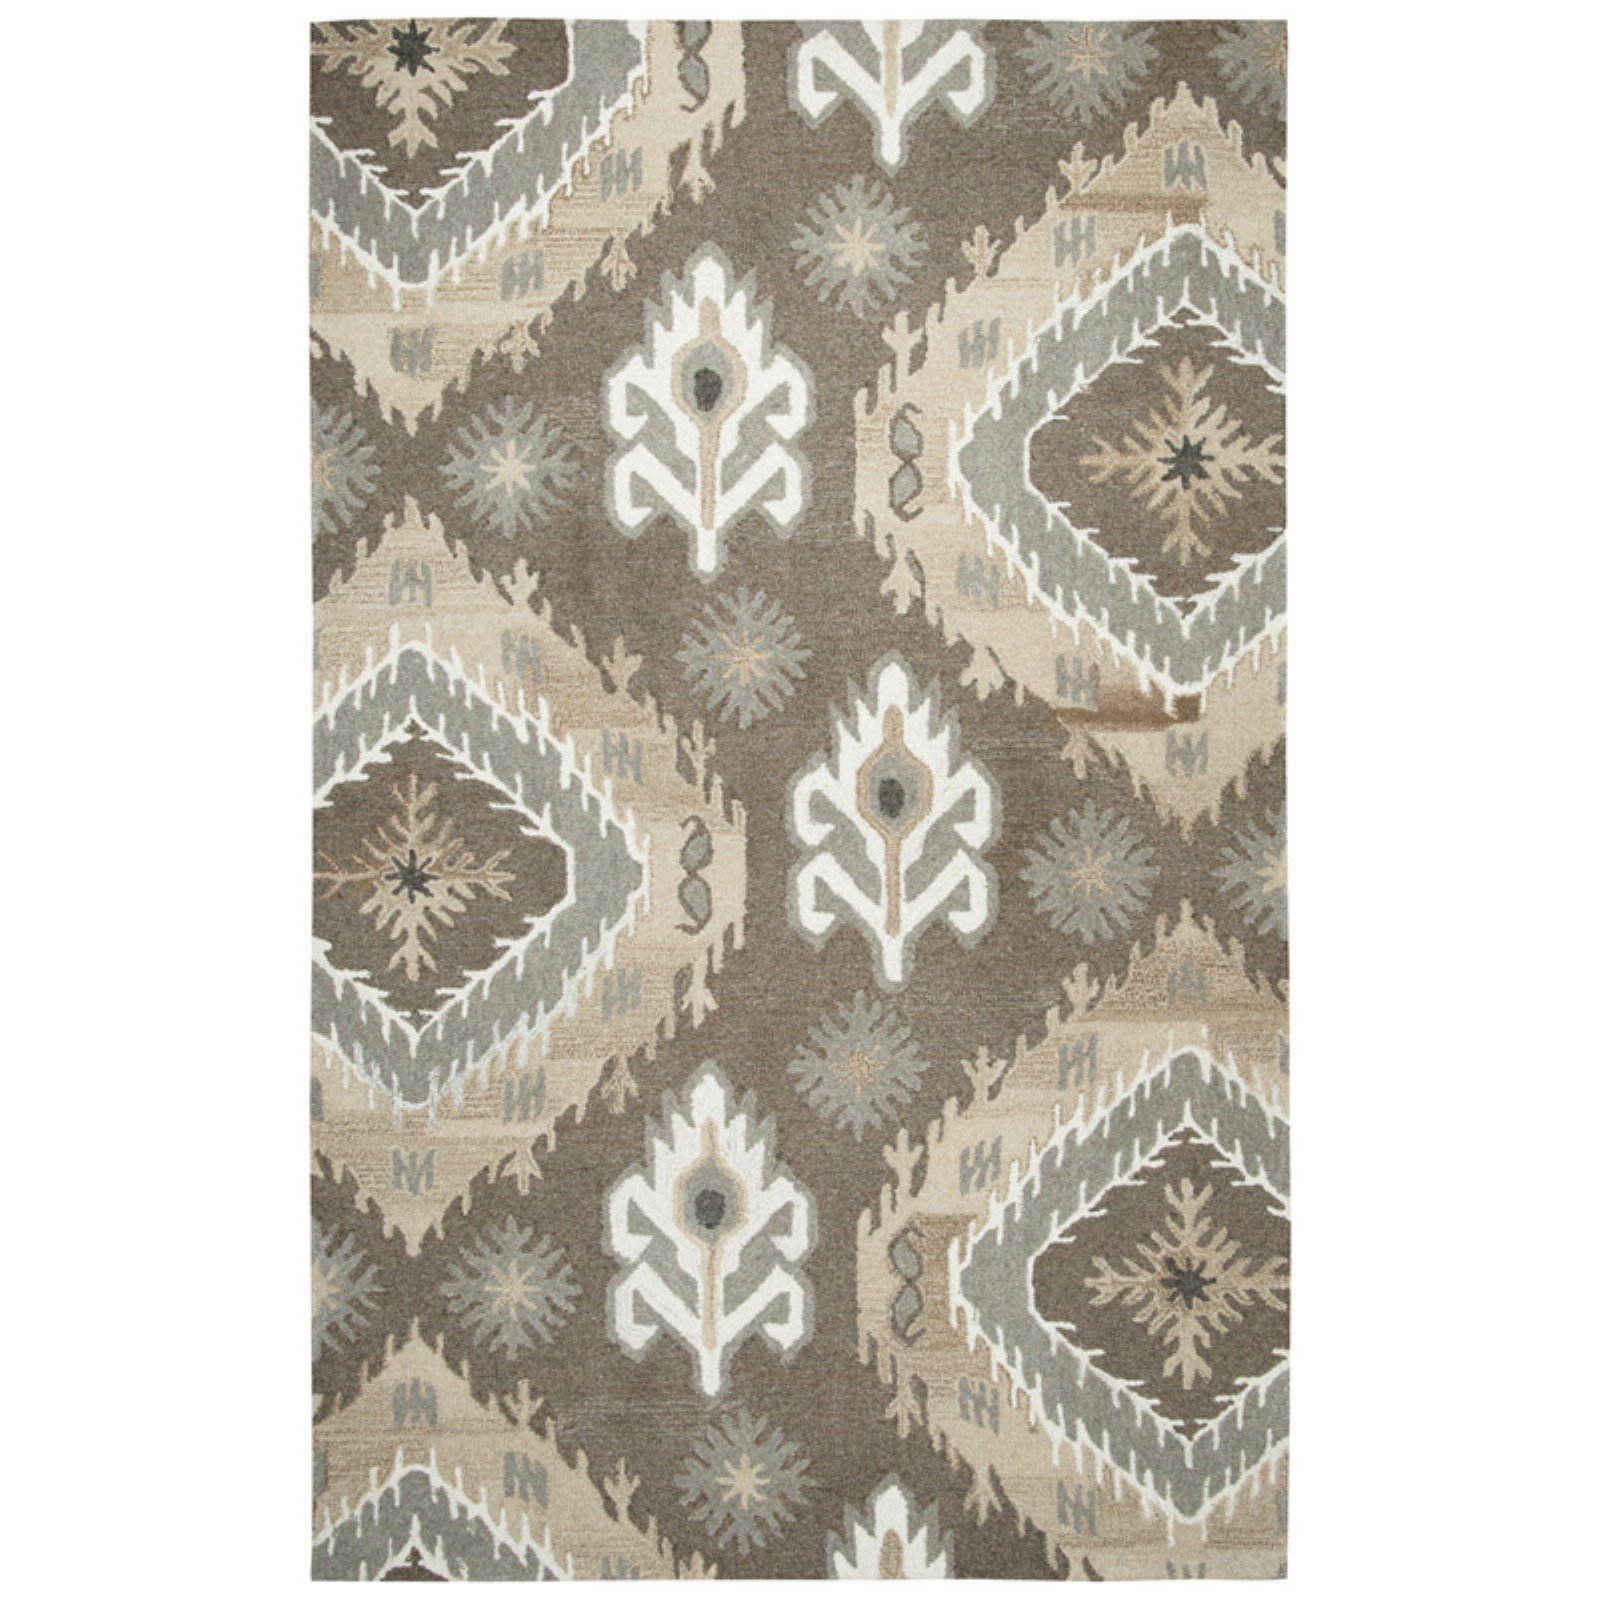 RIZZY HOME SUFFOLK COLLECTIONS SK366A 9' x 12' AREA RUGS